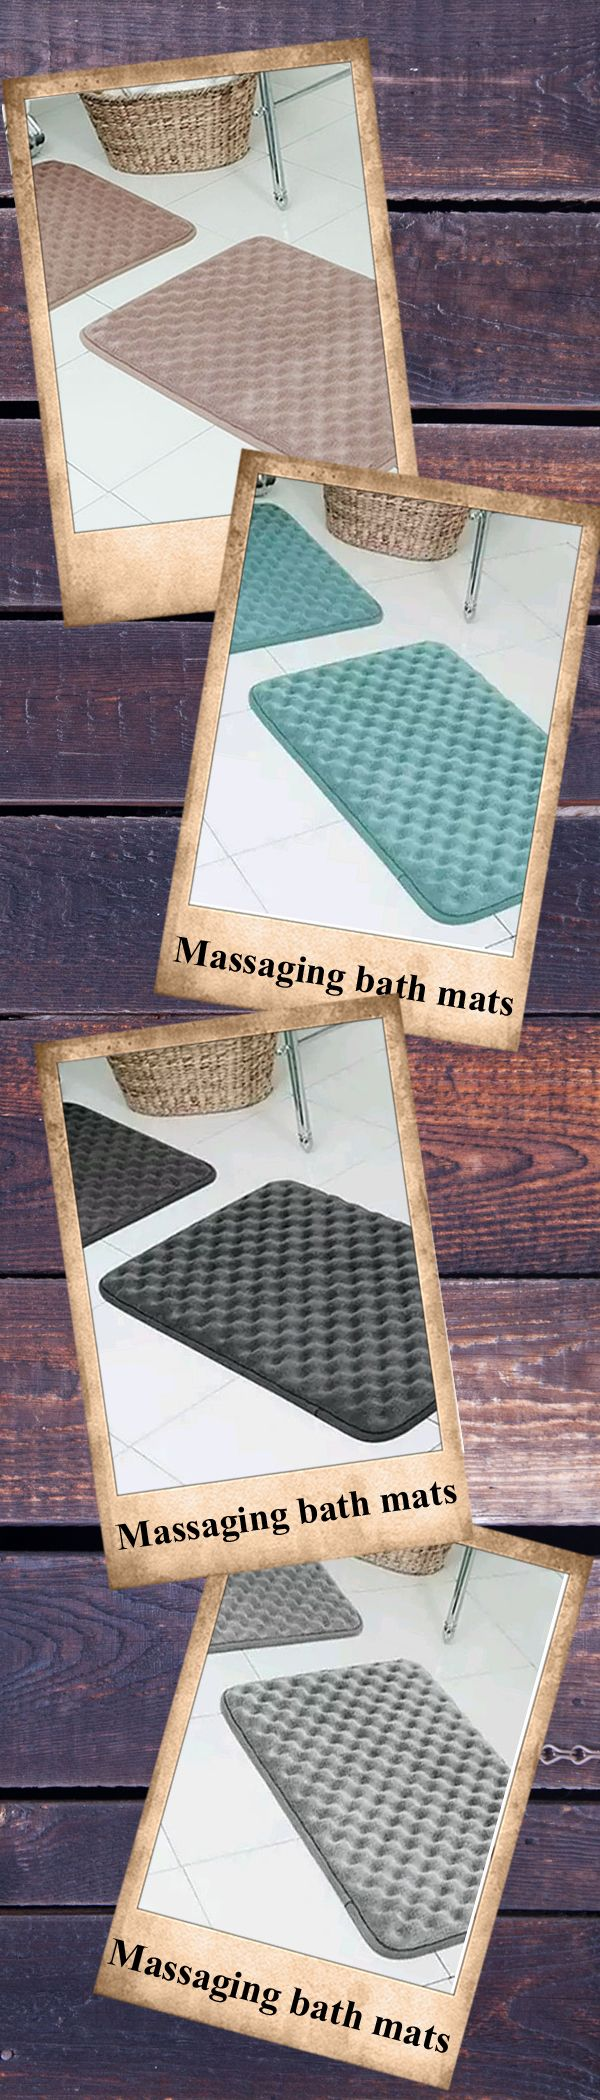 Includes 2 bath mats made of 100% polyester and filled with 100% polyurethane memory foam. Designed for ultimate comfort, these mats are ultra plush and made of anti-skid PVC backing. Available in Stripes or Bubbles in your choice of Brown, Gray, Light Blue, Teal, or Silver.